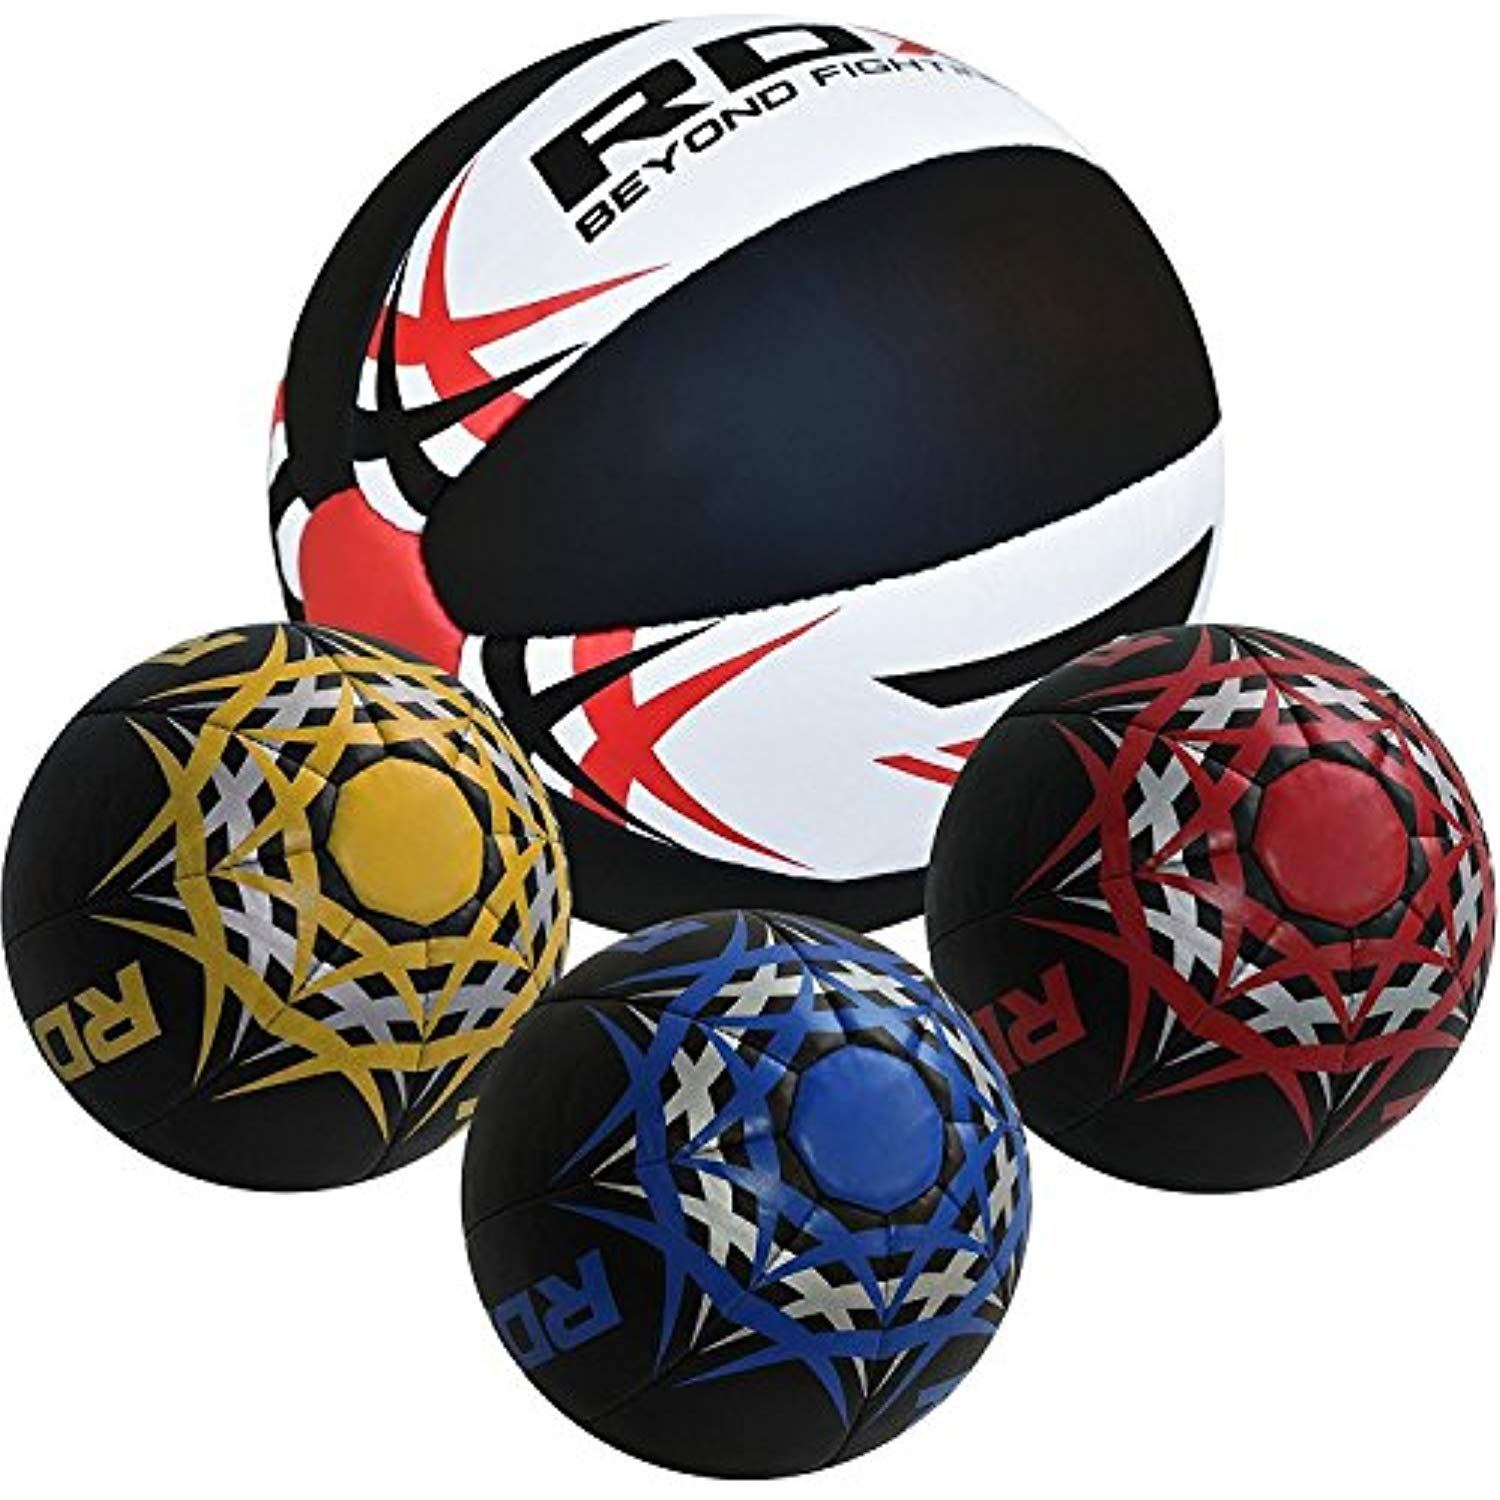 RDX Heavy Crossfit Medicine Ball Weighted Fitness Training